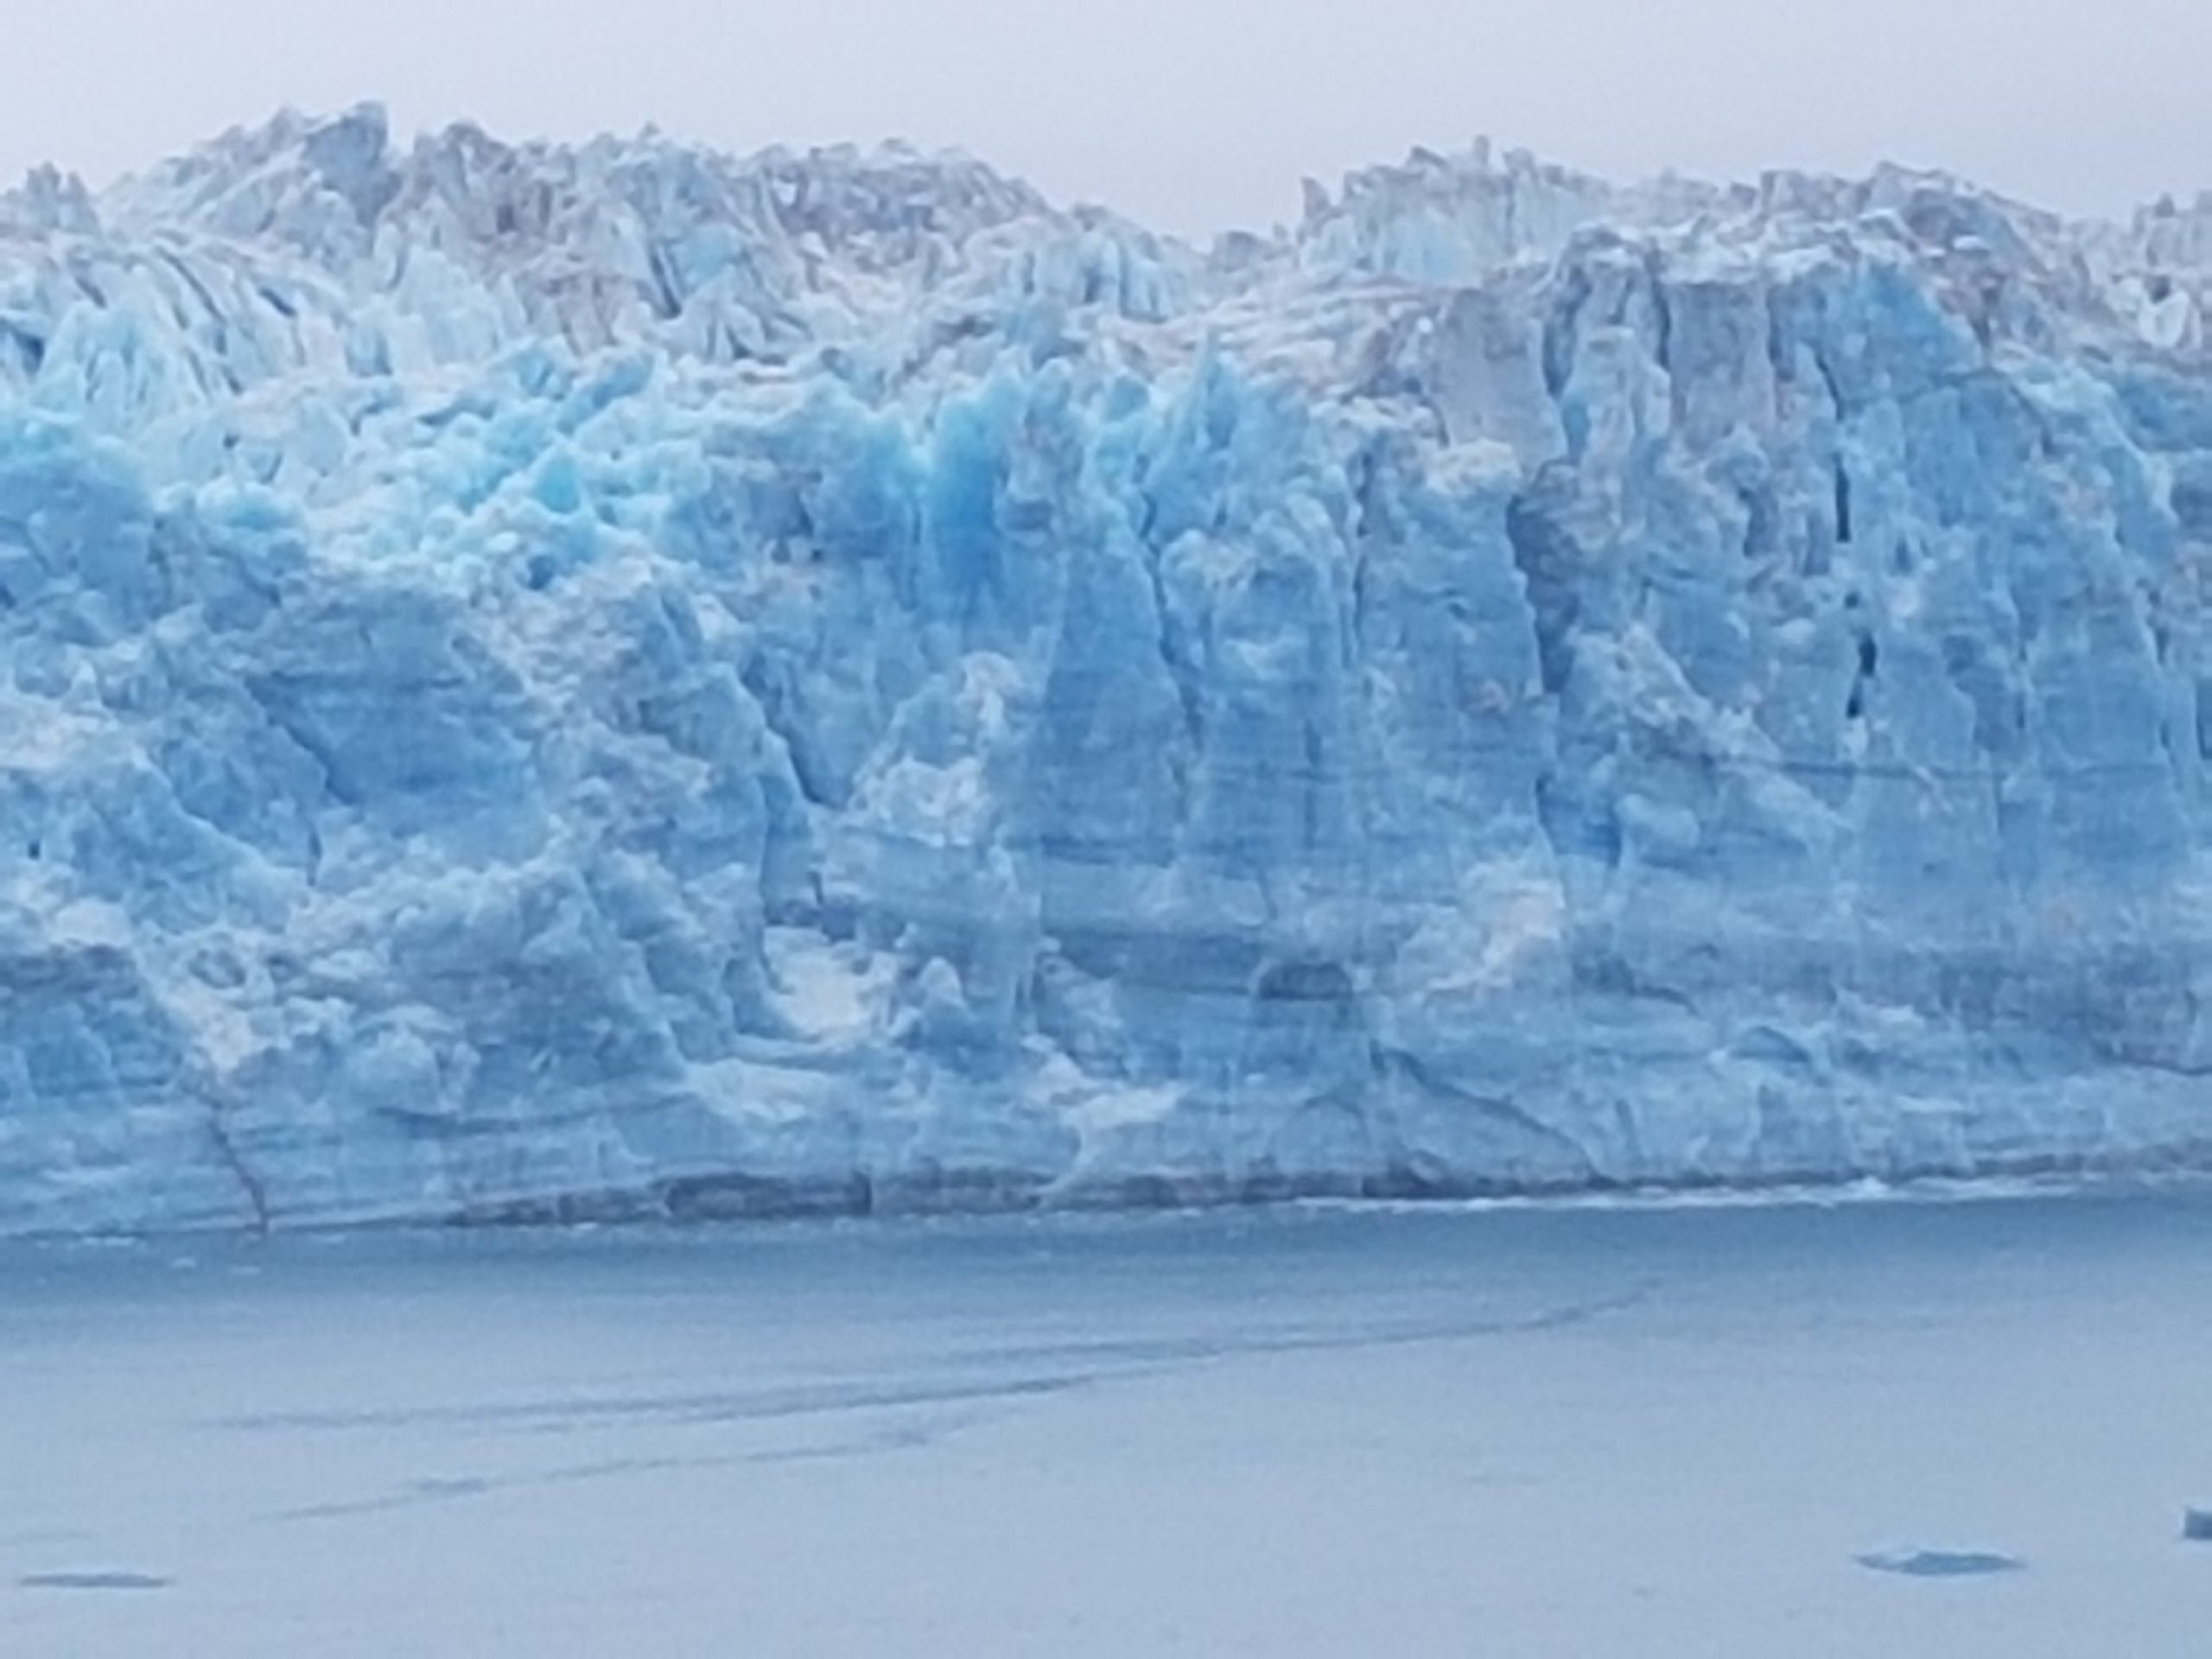 10 story's of sheer ice